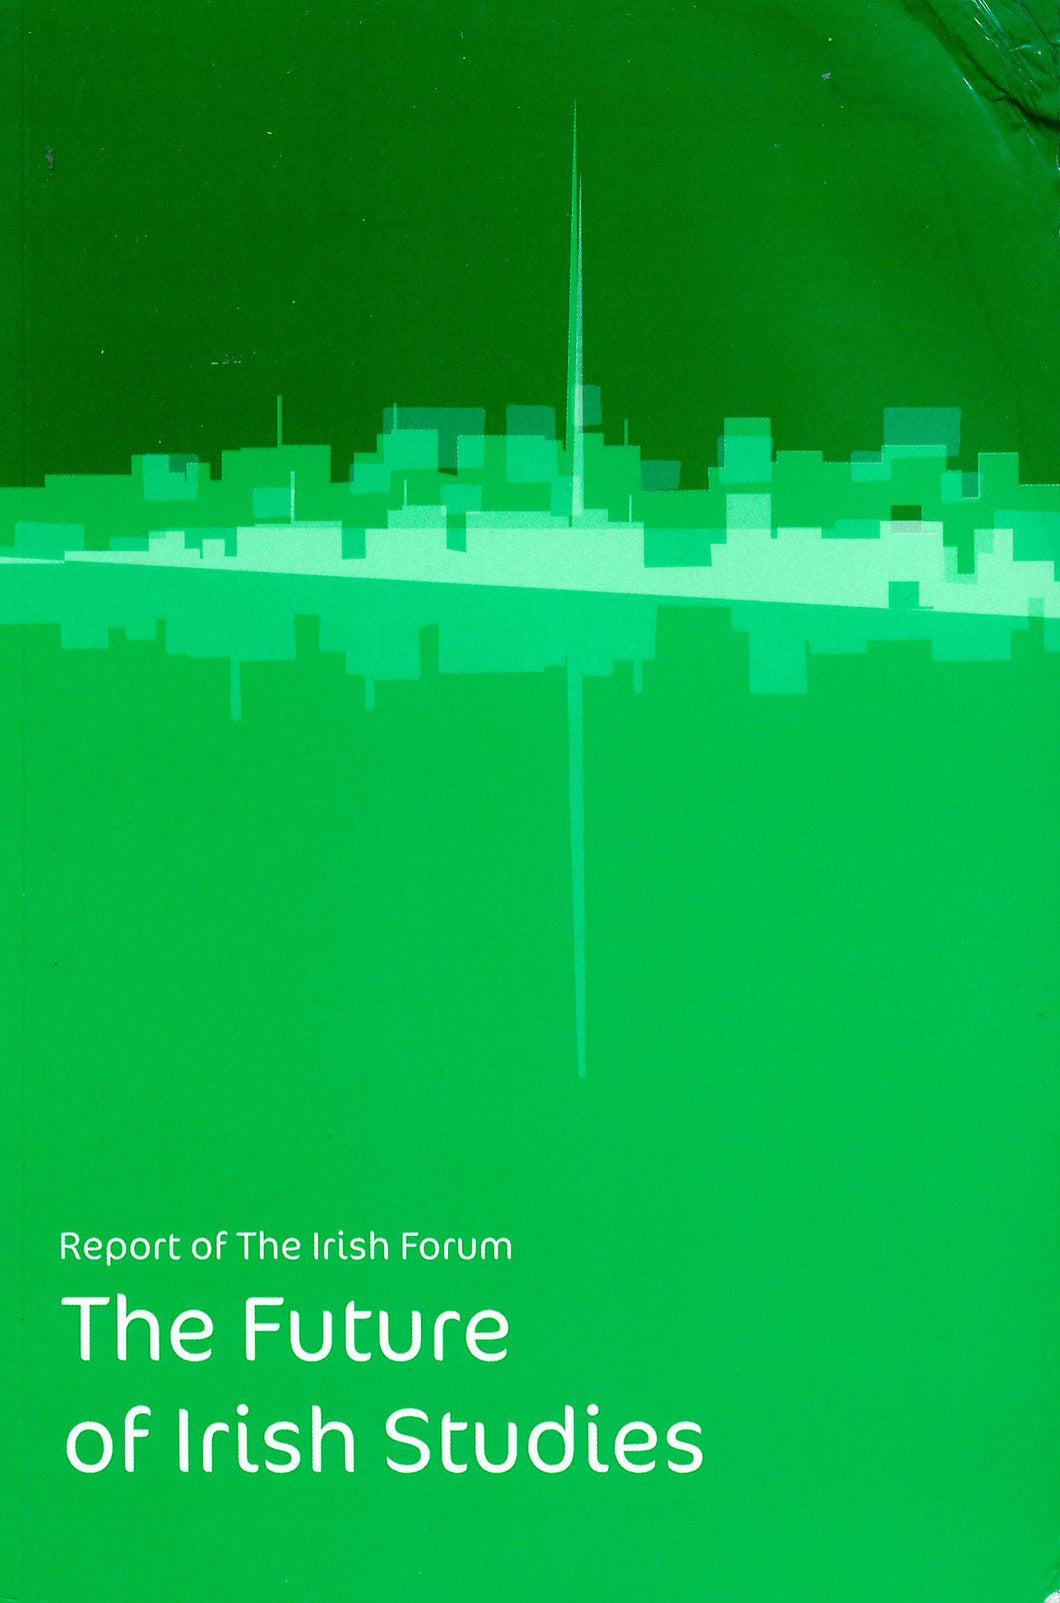 The Future of Irish Studies: Report of the Irish Forum